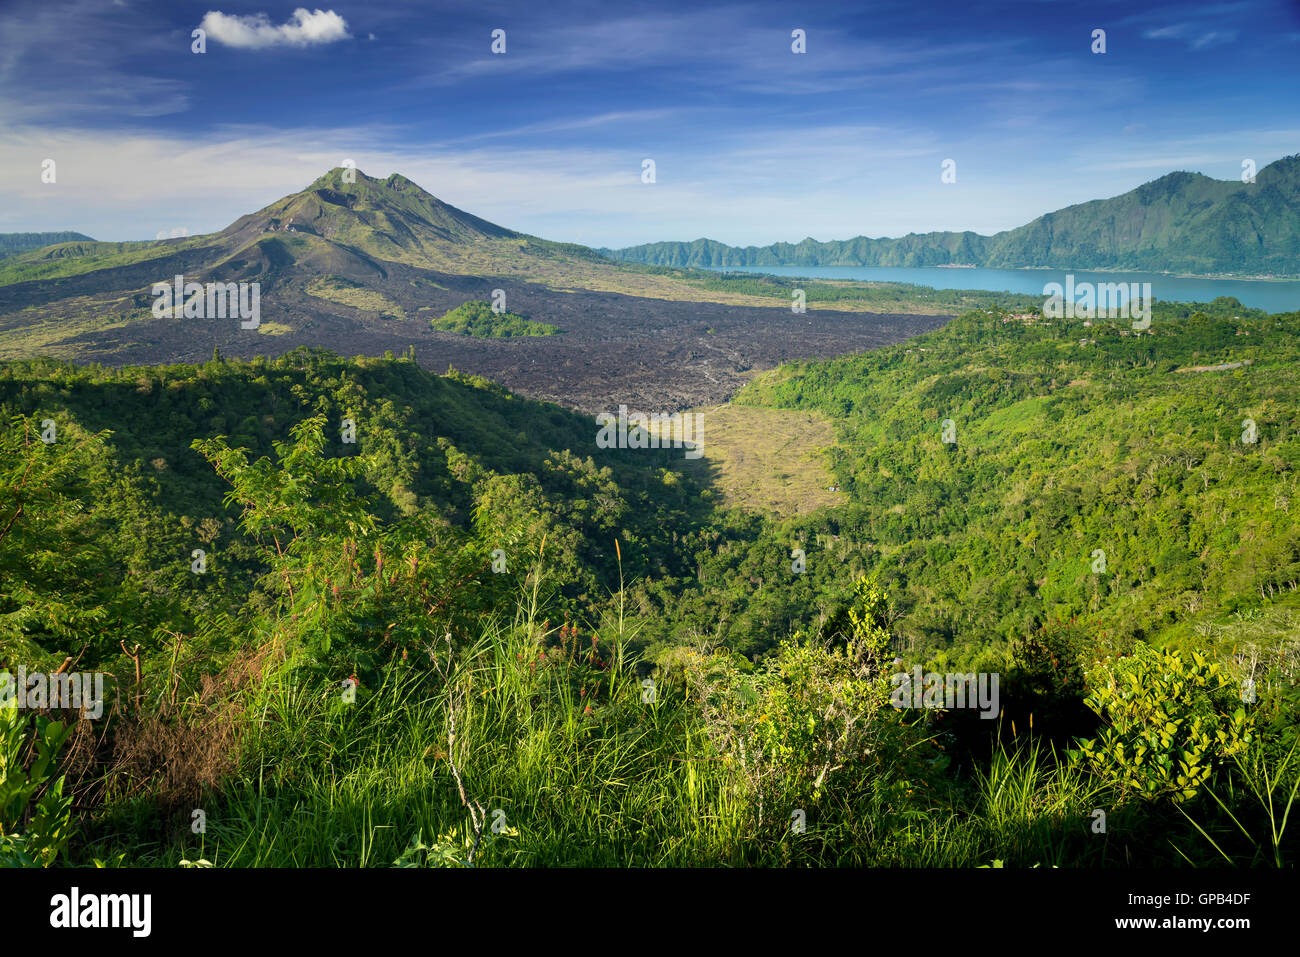 Monumental Kintamani Volcano of Bali, Indonesia - Stock Image